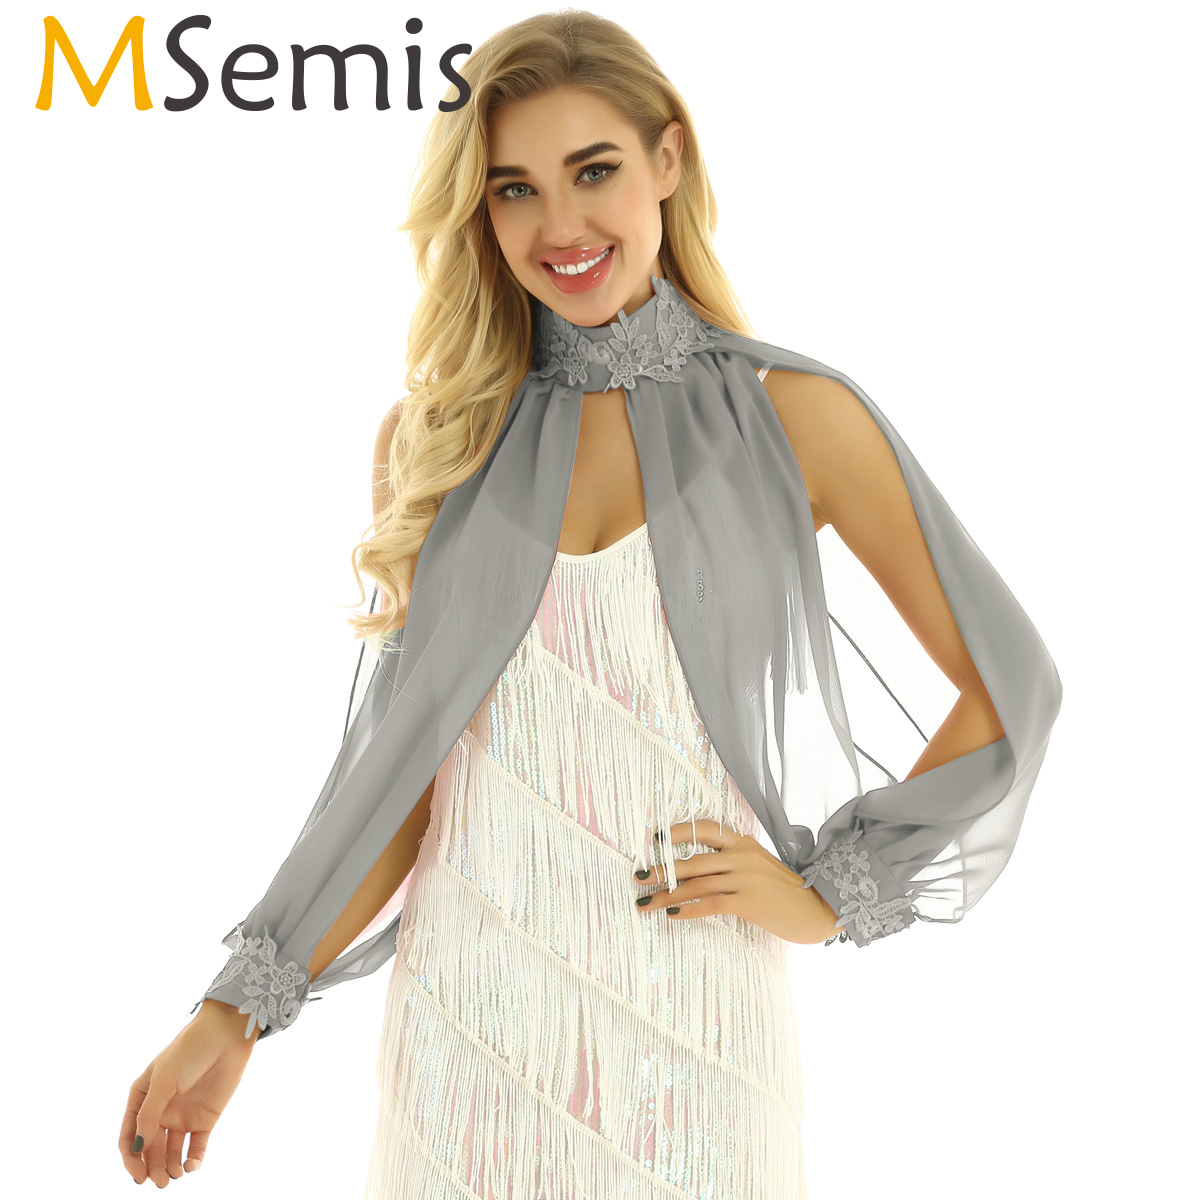 MSemis Women Sleeves With Split Elegant Cape Chiffon Shrug Wraps Arm Warmers Shrug Arm Cover Ups Dance Raglan Long Flare Sleeve